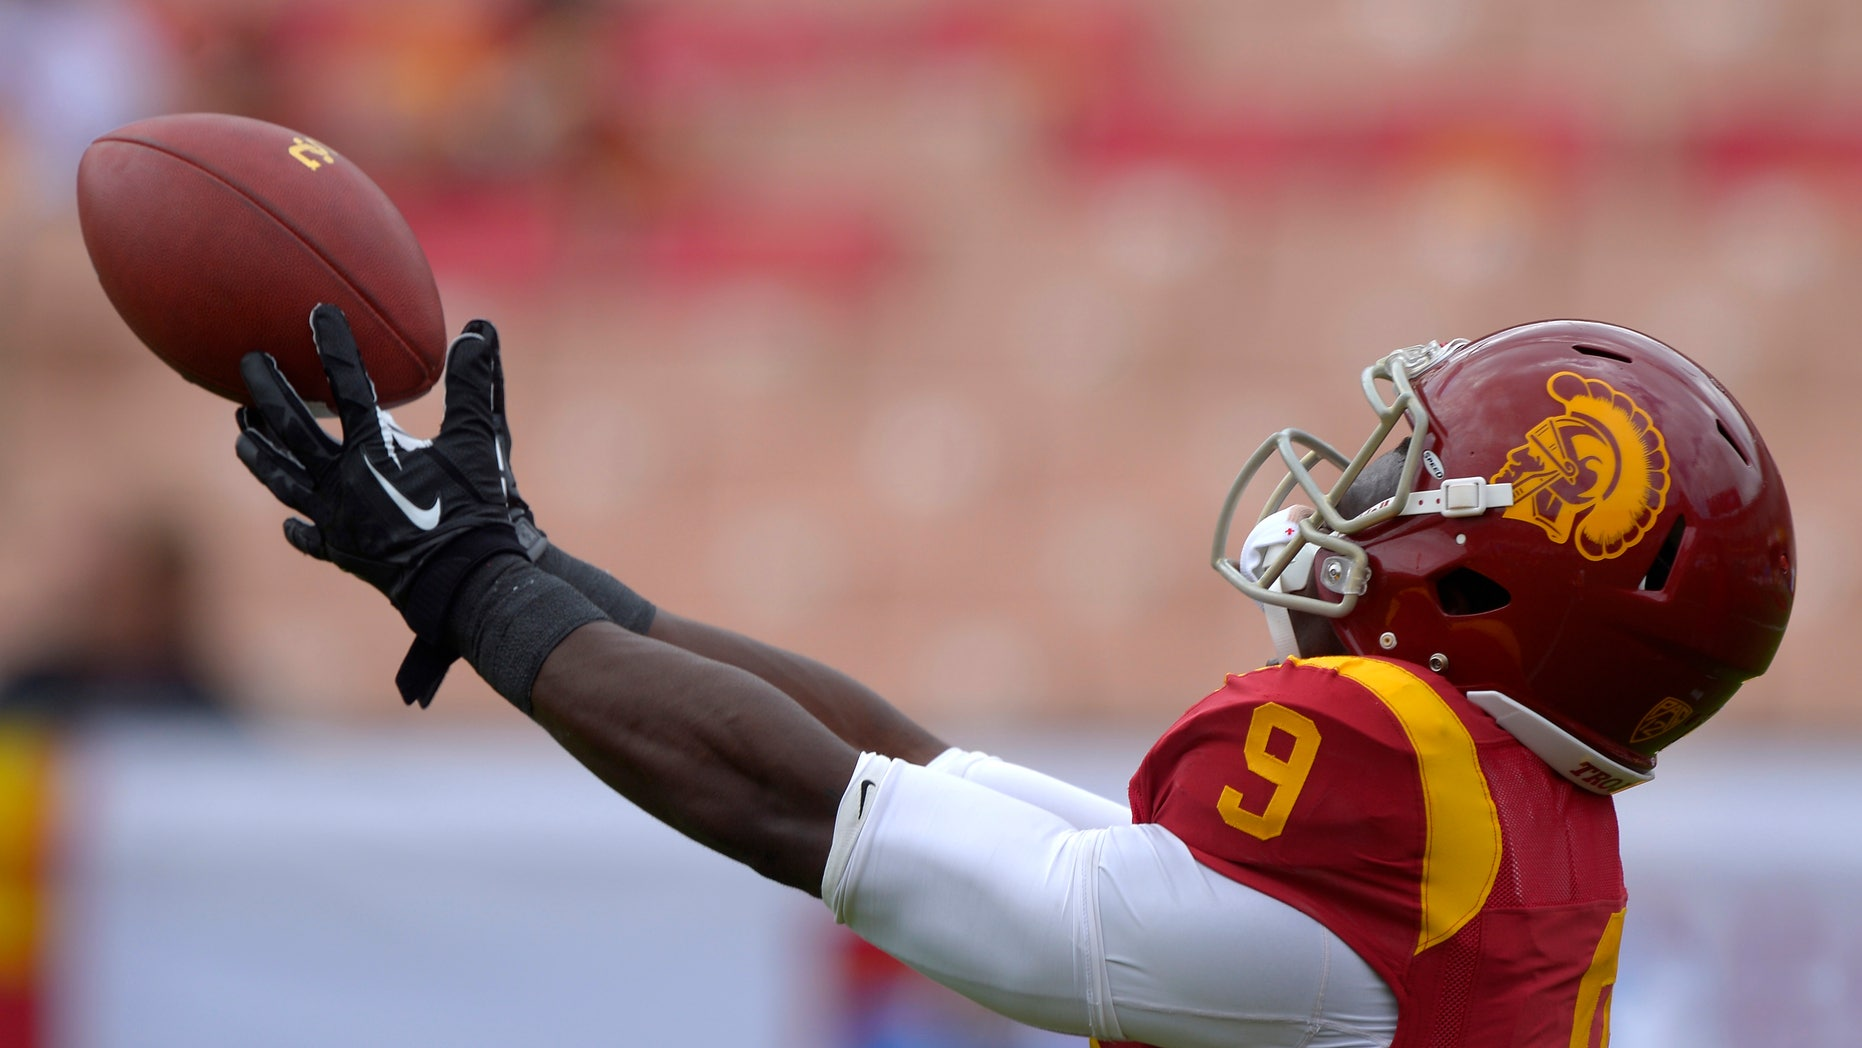 FILE - In this Sept. 21, 2013, file photo, Southern California wide receiver Marqise Lee catches a pass during warm-ups prior to an NCAA college football game against Utah State in Los Angeles. Already depleted by NCAA sanctions, USC is rapidly running out of healthy players midway through its tumultuous season. (AP Photo/Mark J. Terrill, File)